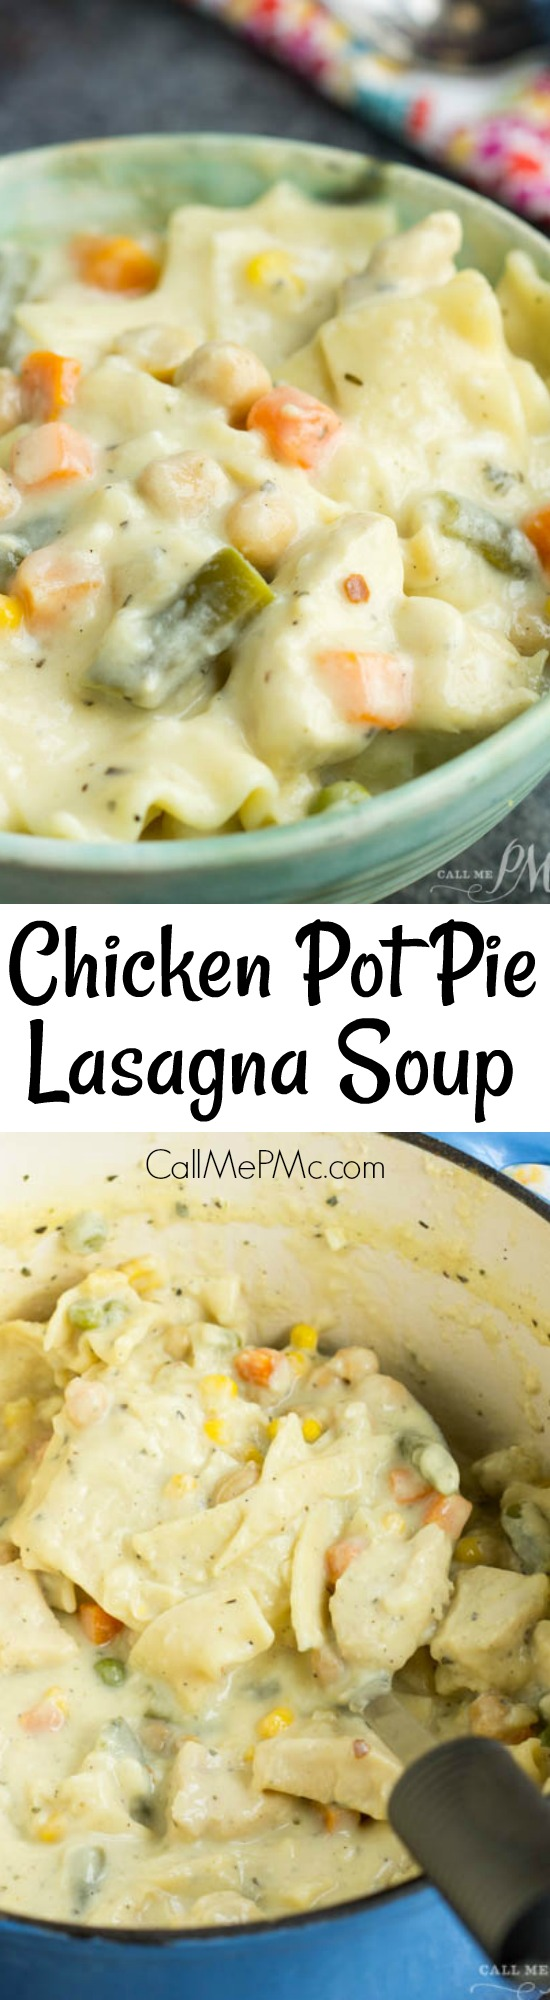 Comfort food. Chicken Pot Pie Lasagna Soup Recipe is an easy one-pot soup recipe your entire family will love! This is the perfect mix of a hearty, comforting chicken pot pie, lasagna, and soup all in one dish.